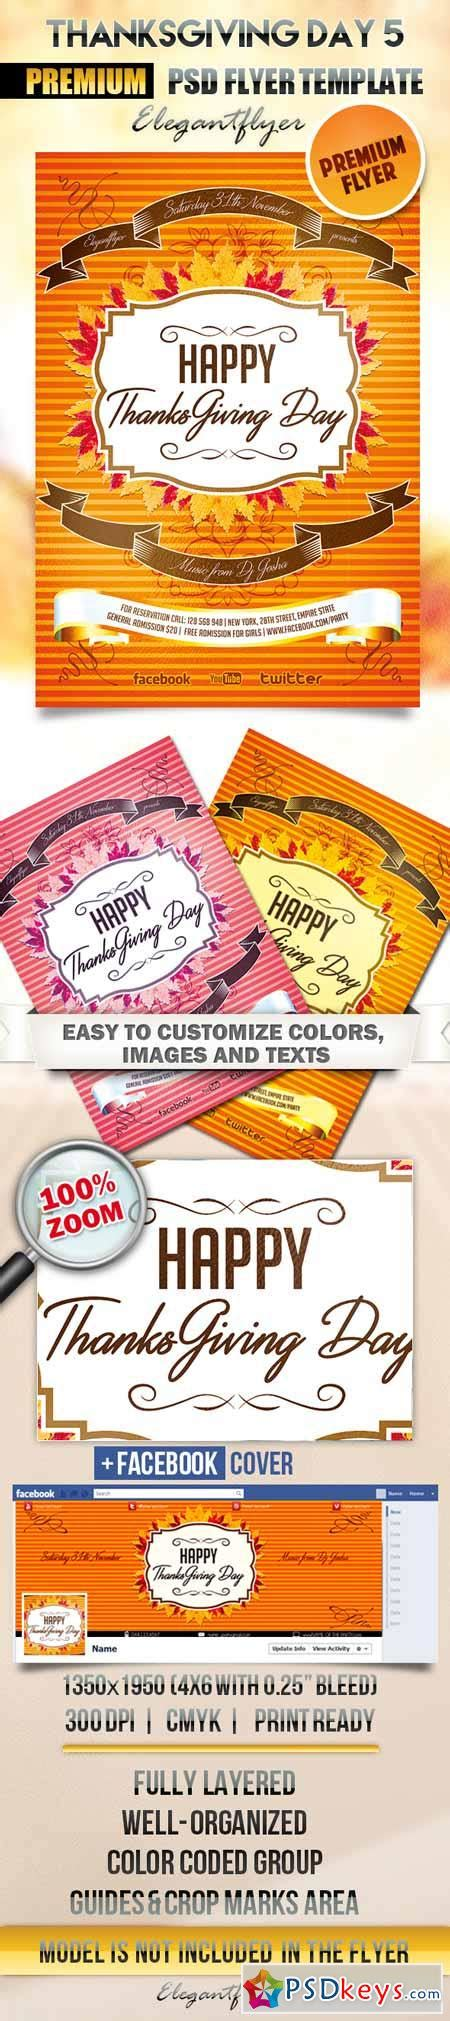 thanksgiving card template psd thanksgiving day 5 flyer psd template cover